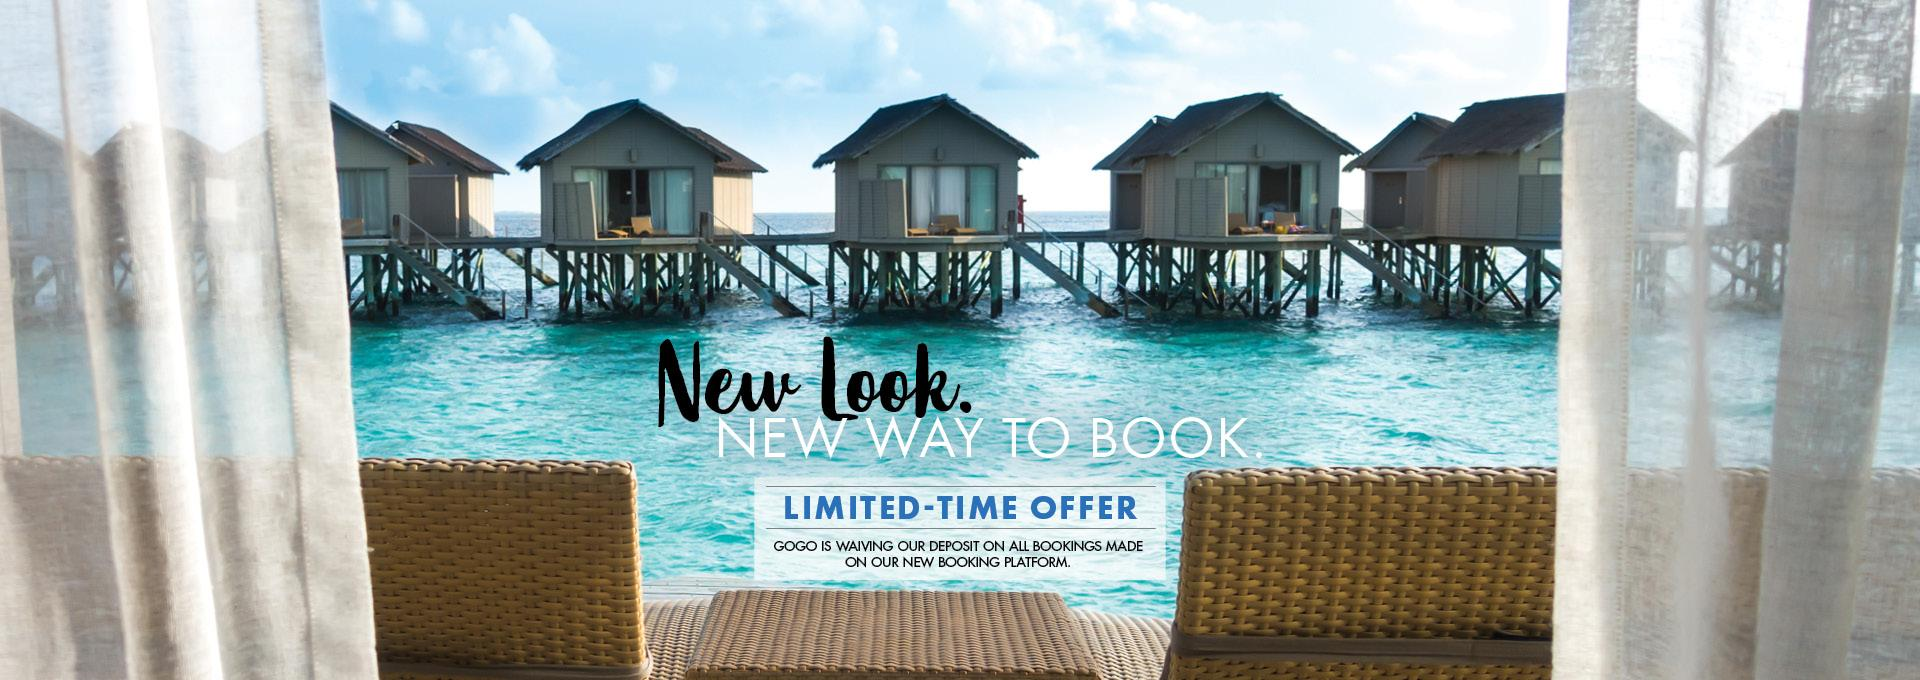 New Look. New Way to Book.